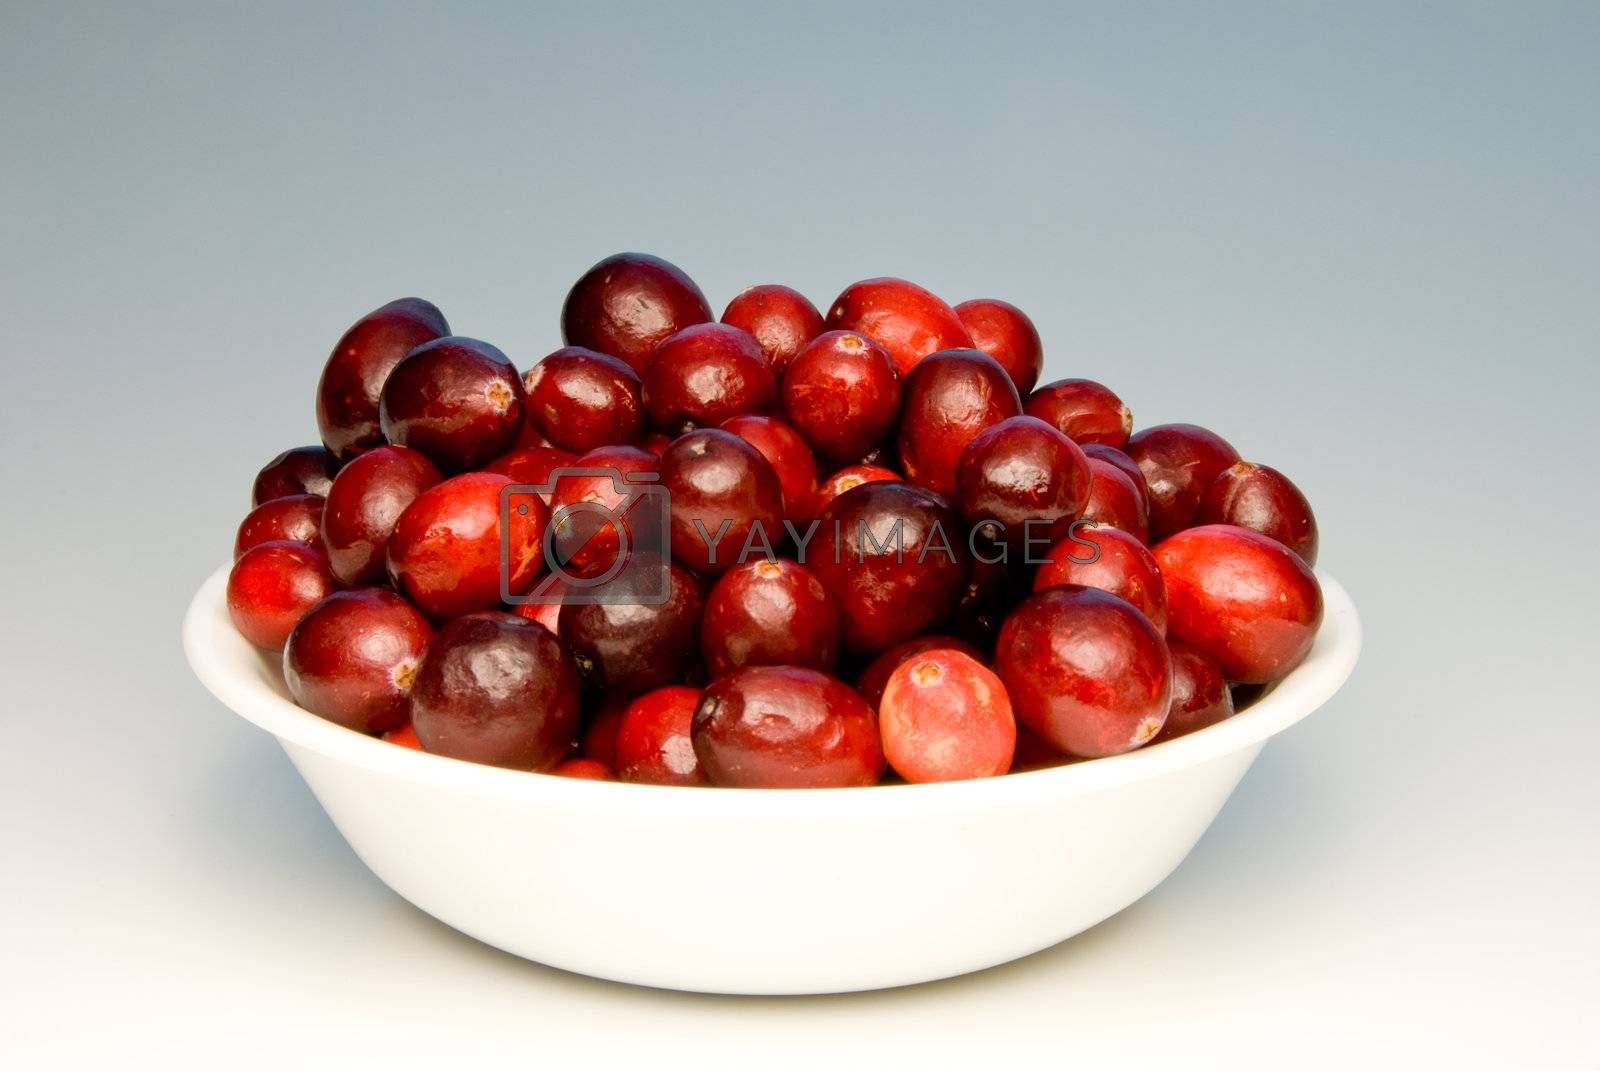 Delicious and healthy cranberries in a white bowl.